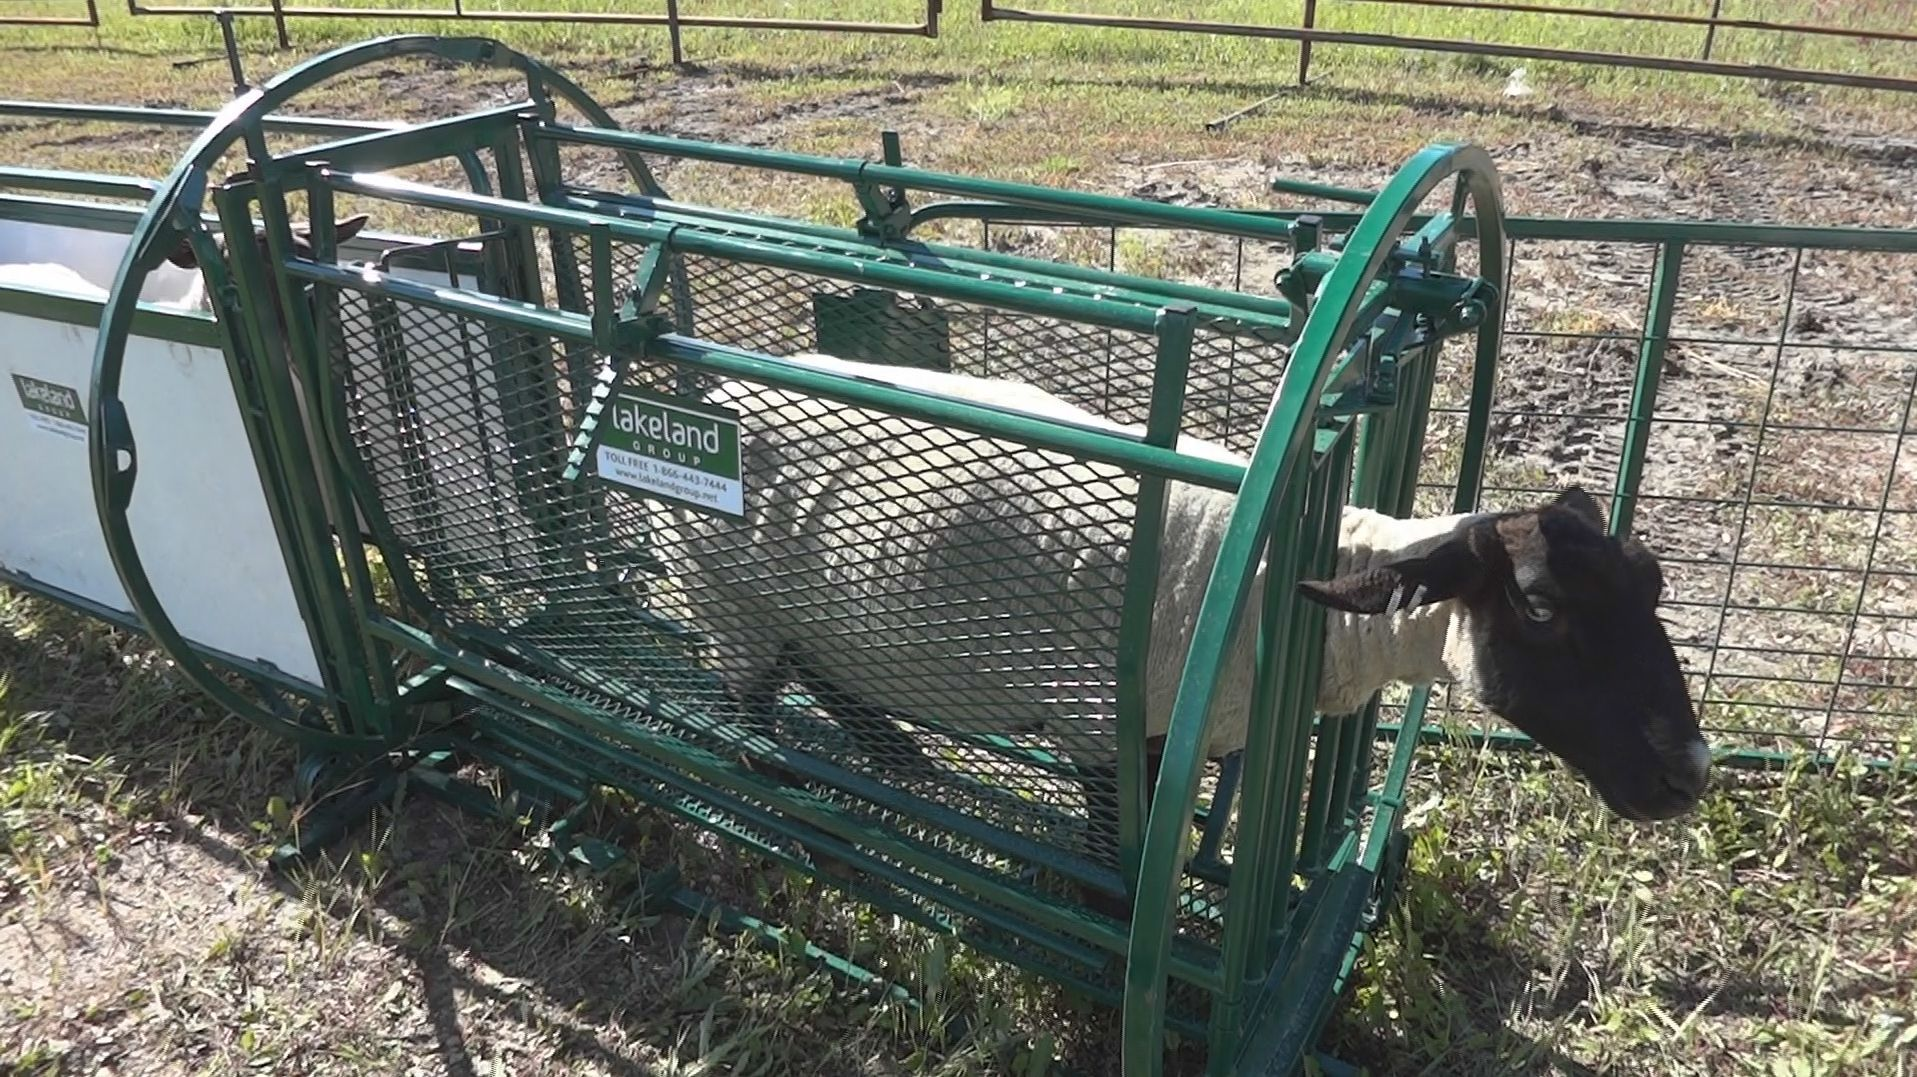 Spin Trim Chute Dst Lakeland Farm And Ranch Direct In 2020 Farm Cattle Farming Lakeland